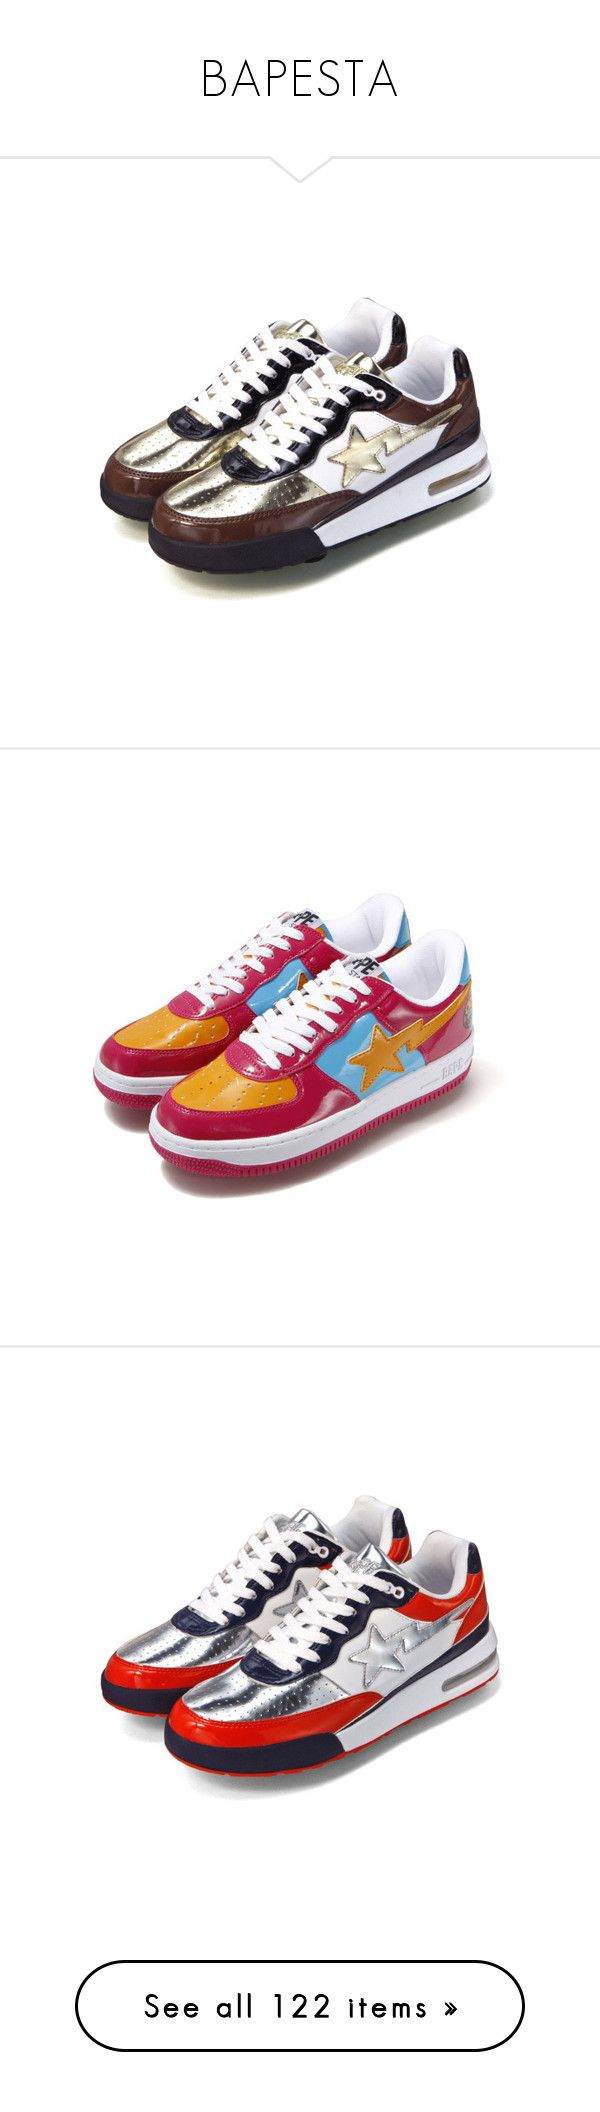 """""""BAPESTA"""" by a4styled ❤ liked on Polyvore featuring a bathing ape, home, home decor, summer footwear, checkerboard shoes, polka dot sandals, checkered shoes, summer shoes, shoes and bright colored shoes"""